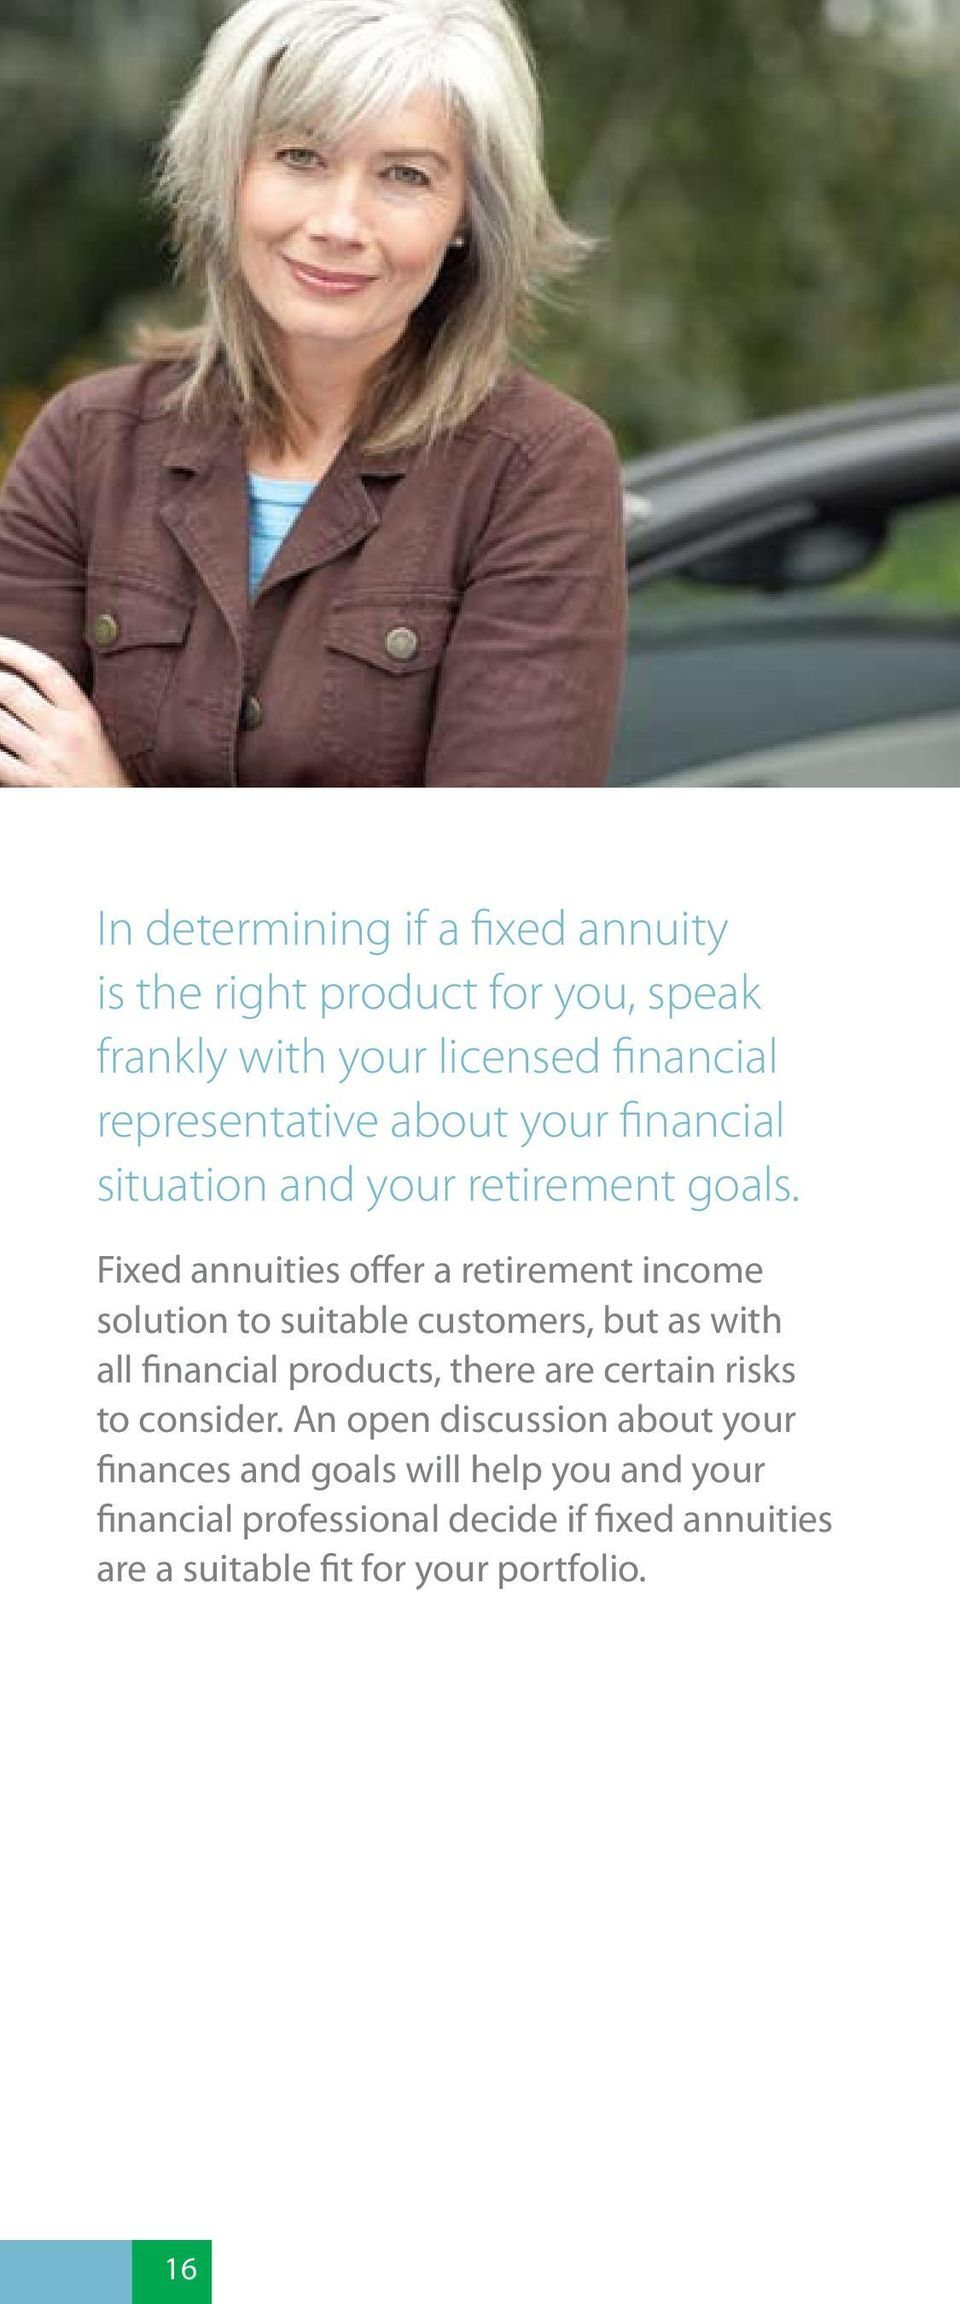 Fixed annuities offer a retirement income solution to suitable customers, but as with all financial products, there are